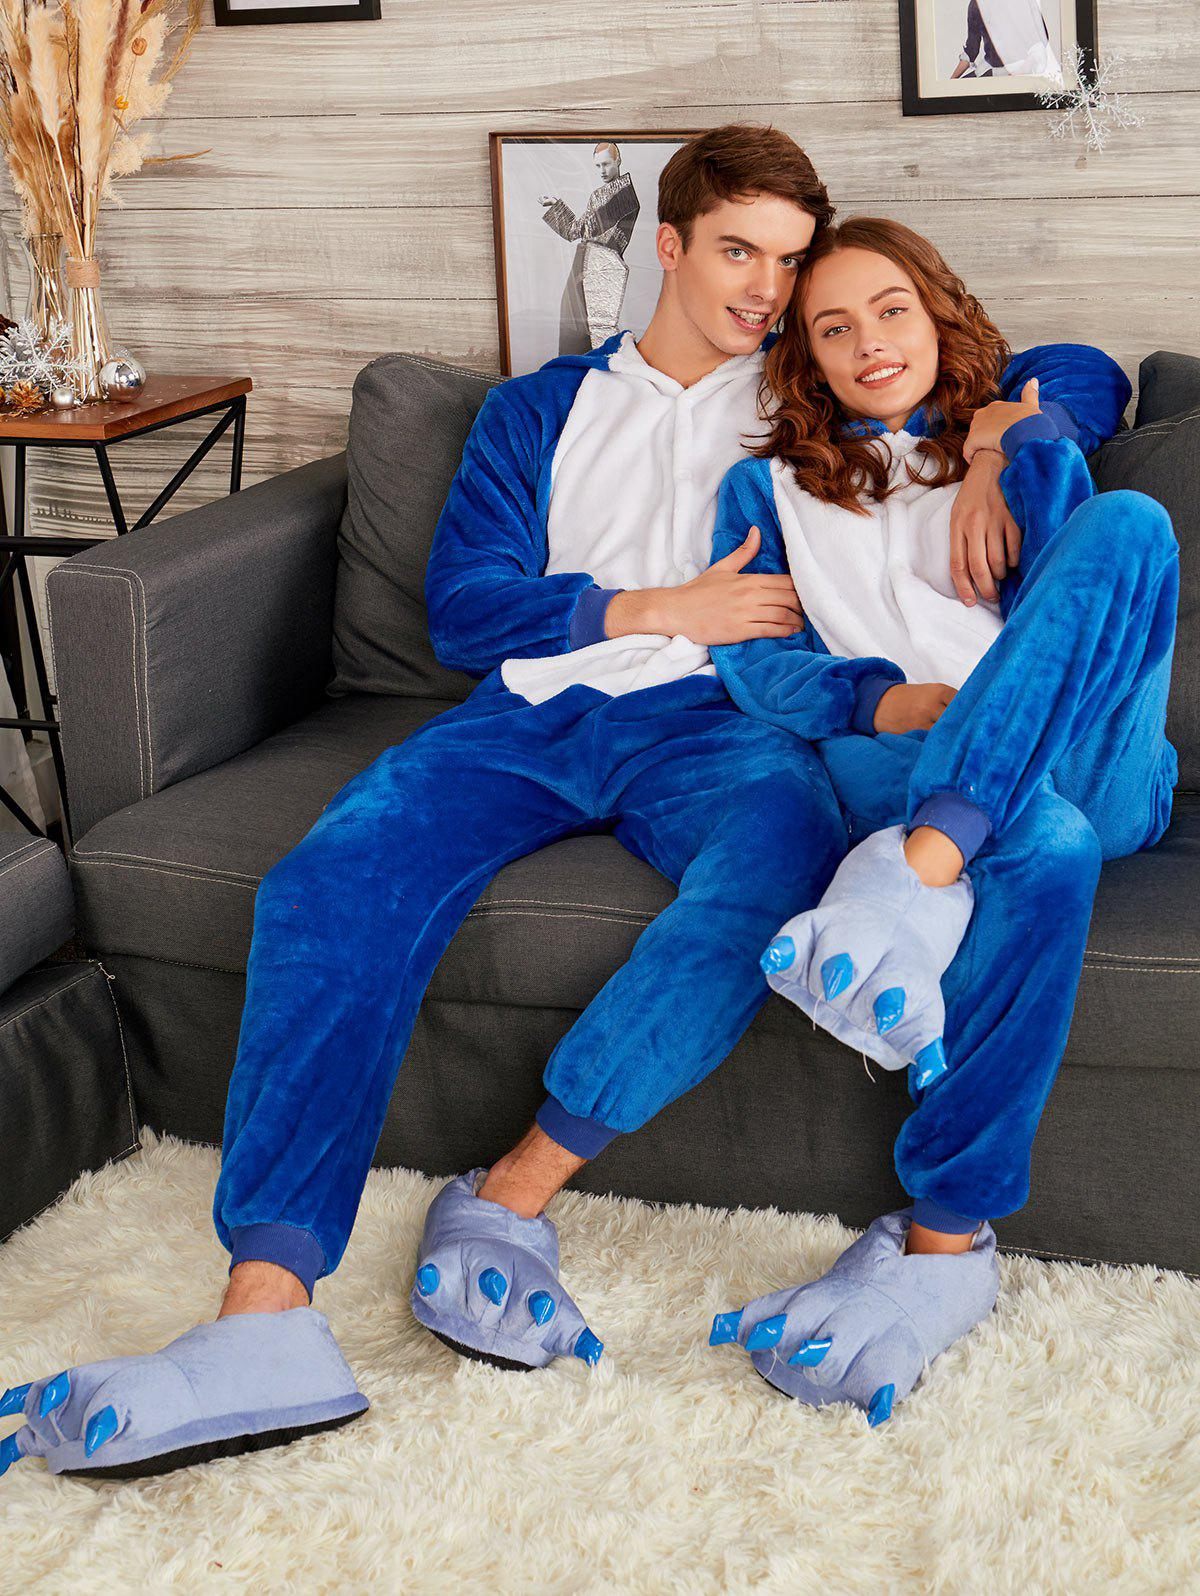 2018 requin de no l famille d 39 animaux onesie pyjama bleu p re s in pyjamas online store best. Black Bedroom Furniture Sets. Home Design Ideas